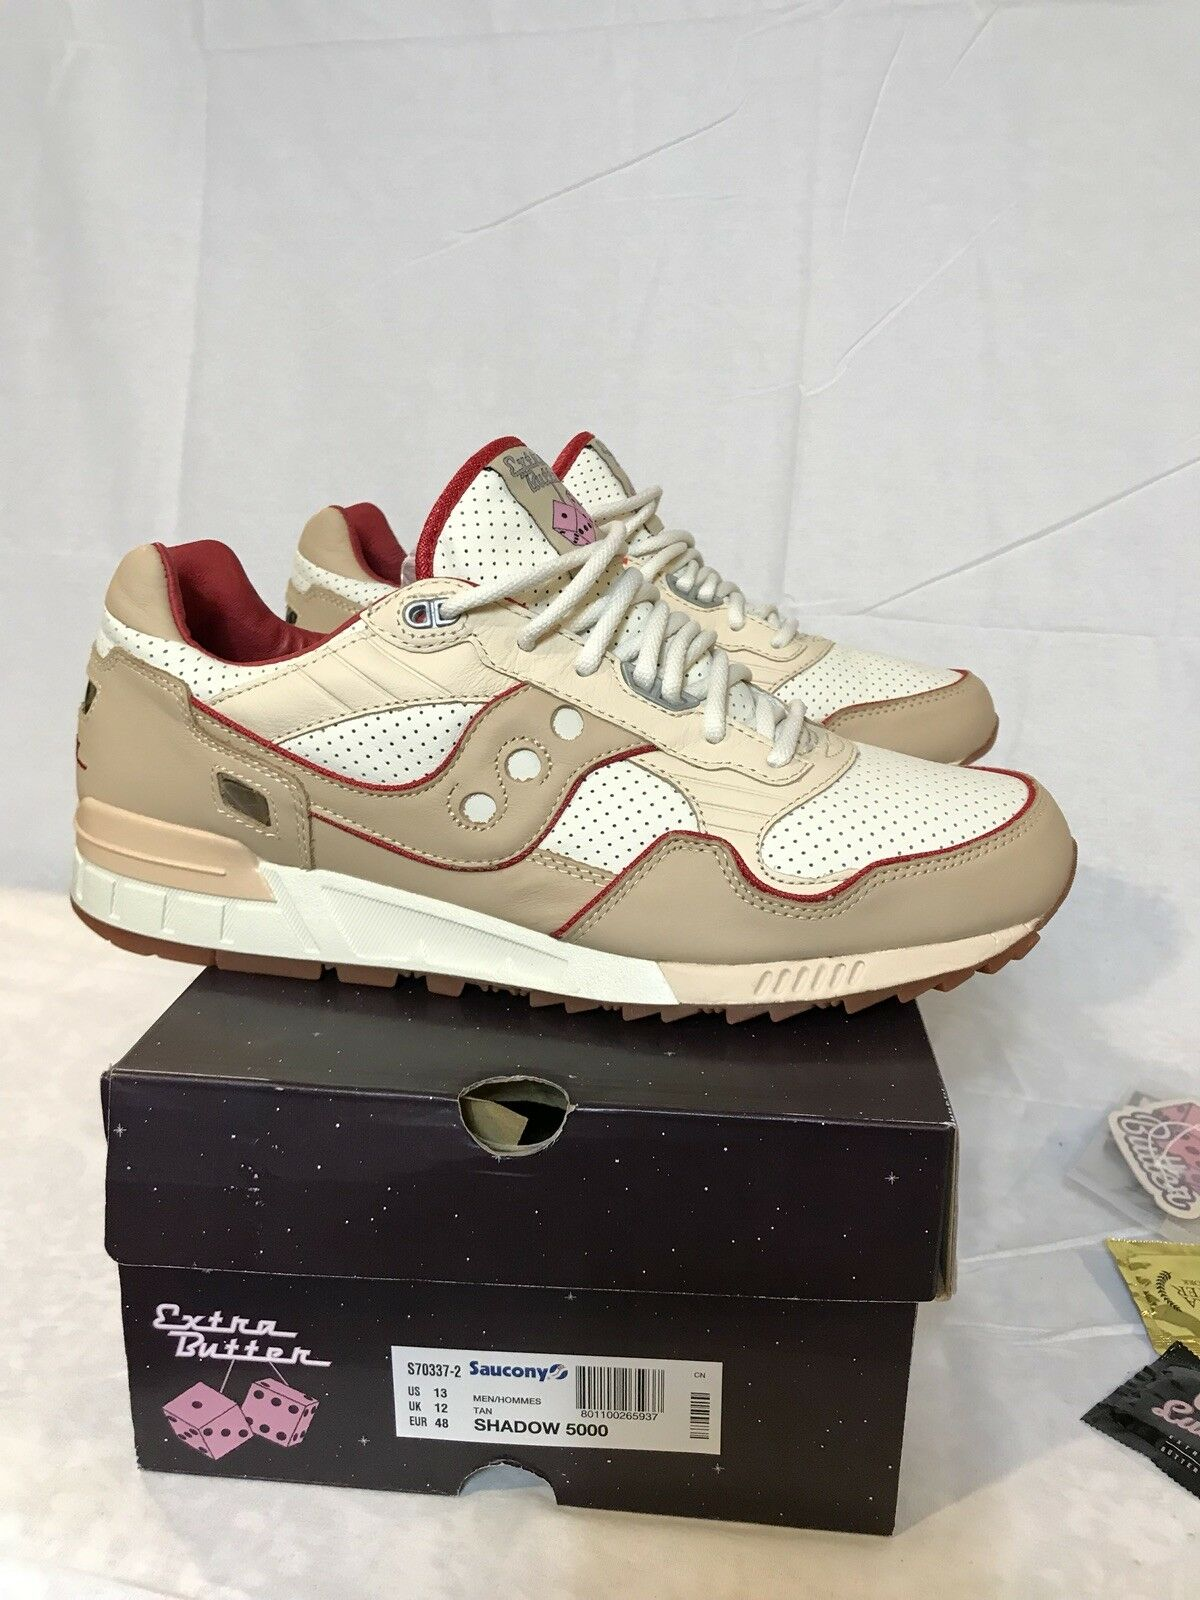 Extra Butter x Saucony Shadow 5000 FTP Sz13 Deadstock very limited F&F release